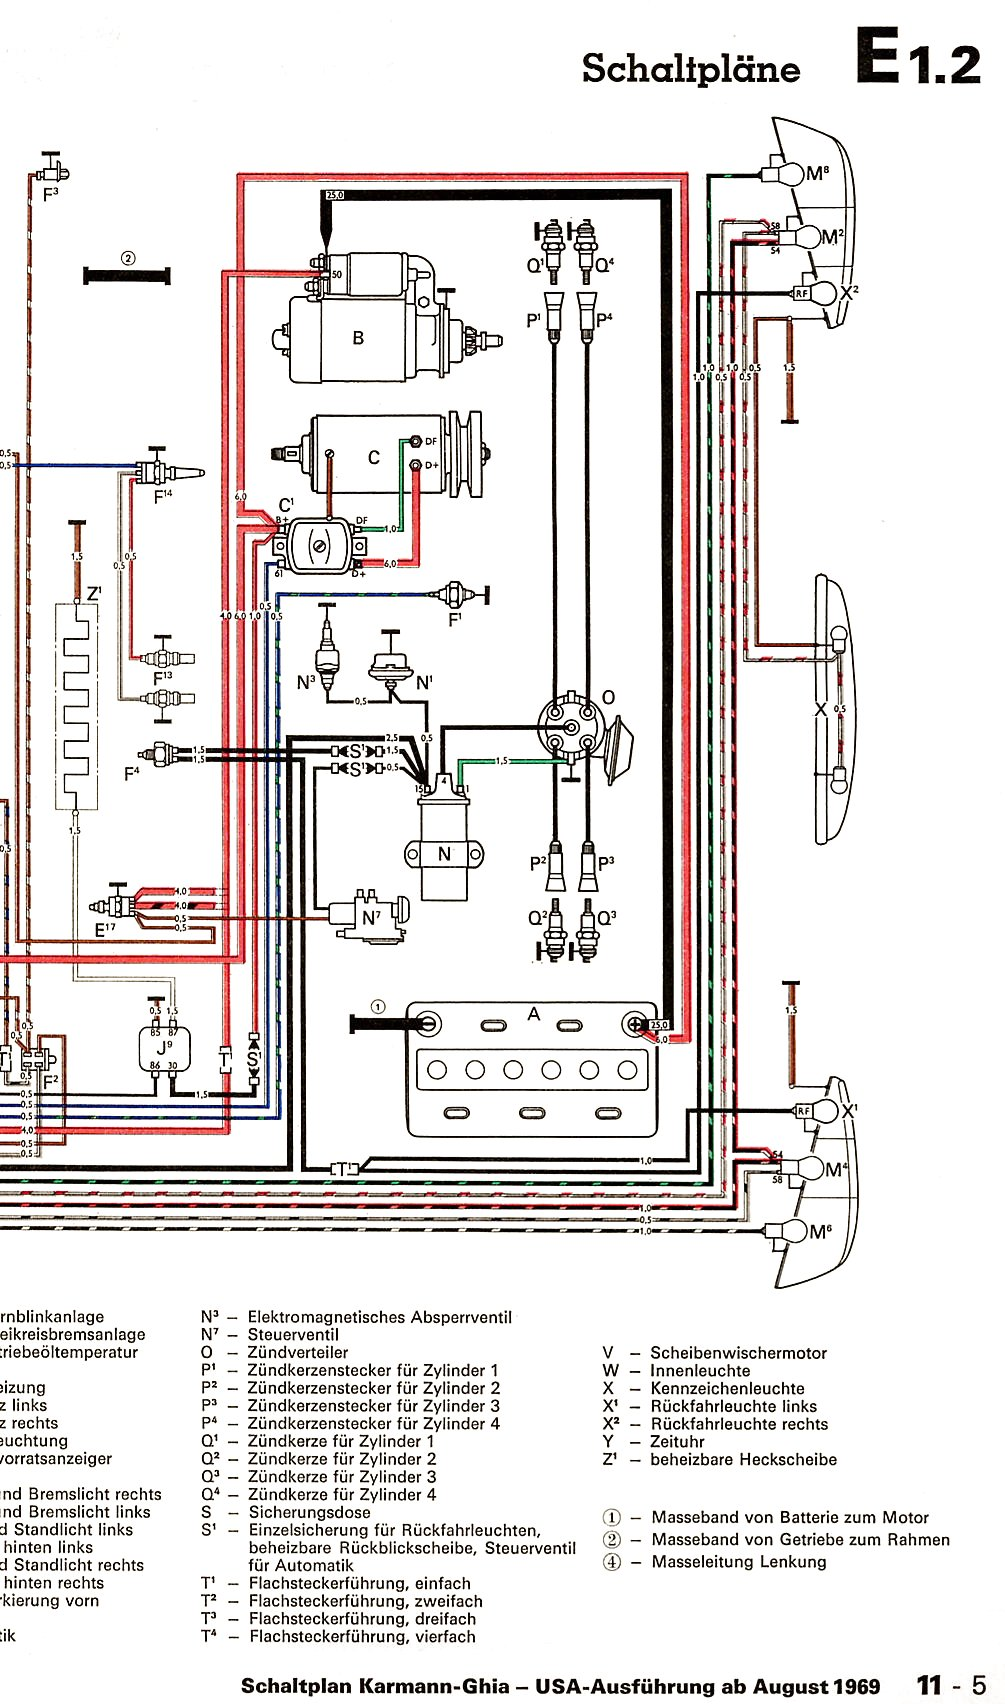 Karmann_Ghia_USA_from_August_1969 2 brakelight problems shoptalkforums com fiat x19 wiring diagram at eliteediting.co